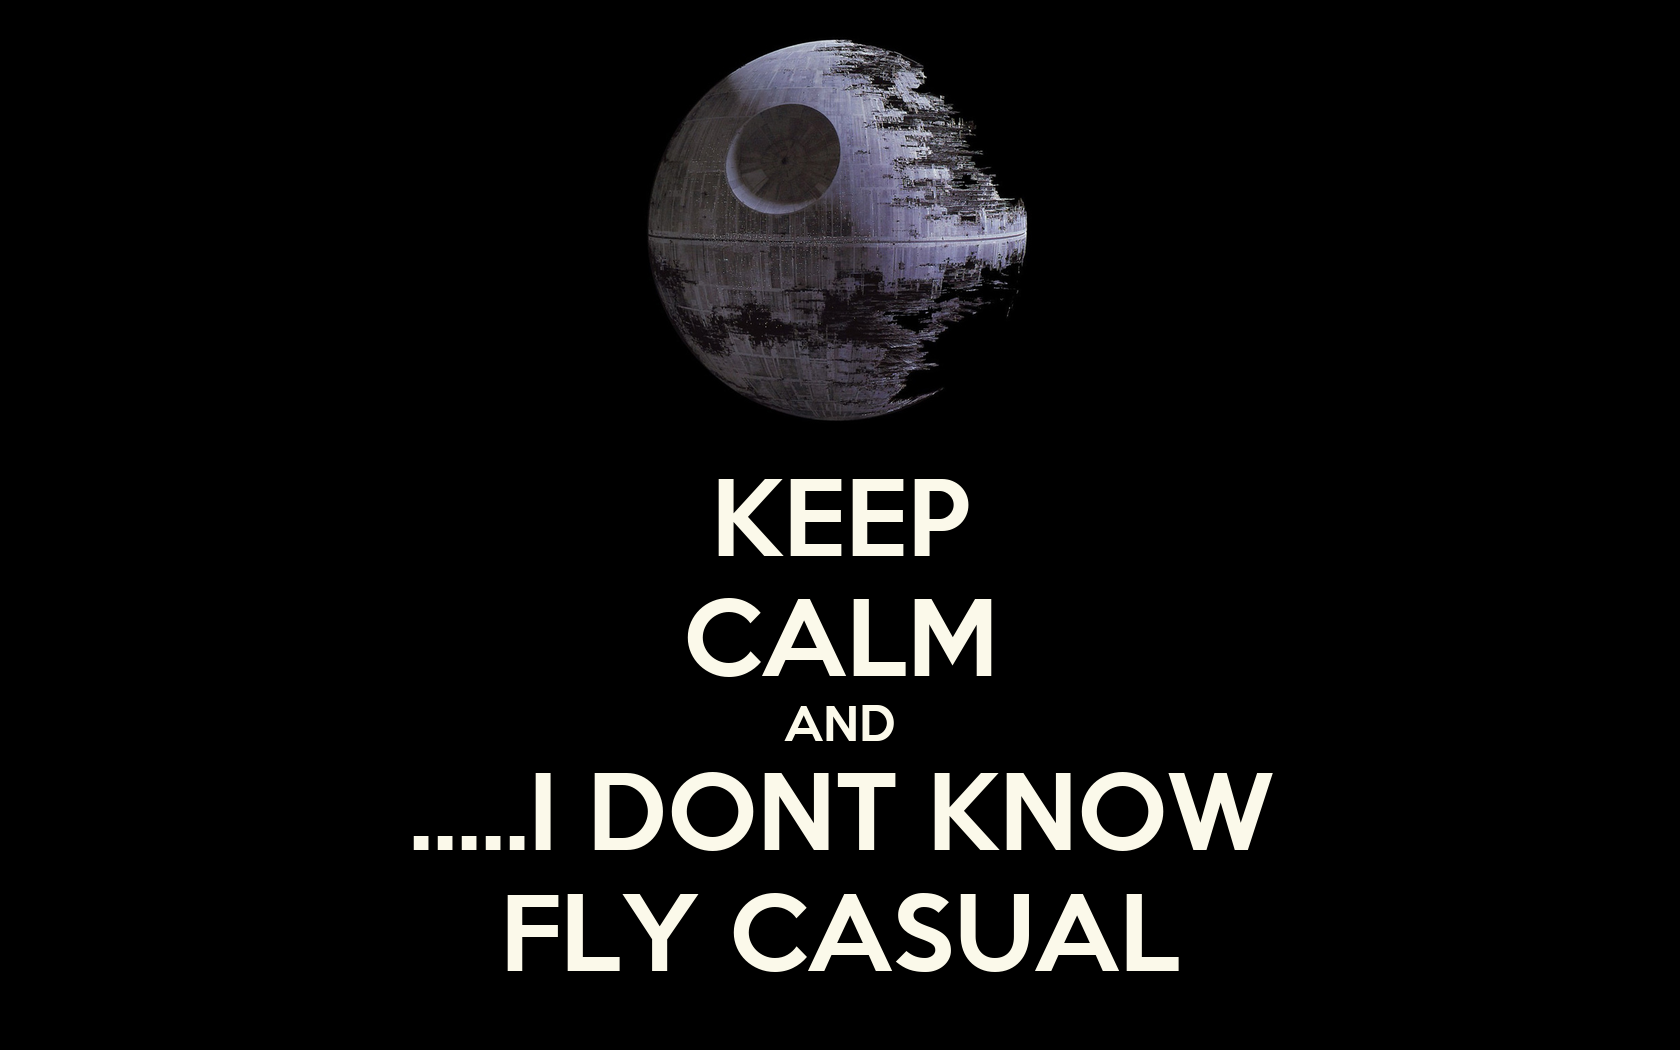 keep-calm-and-i-dont-know-fly-casual.png